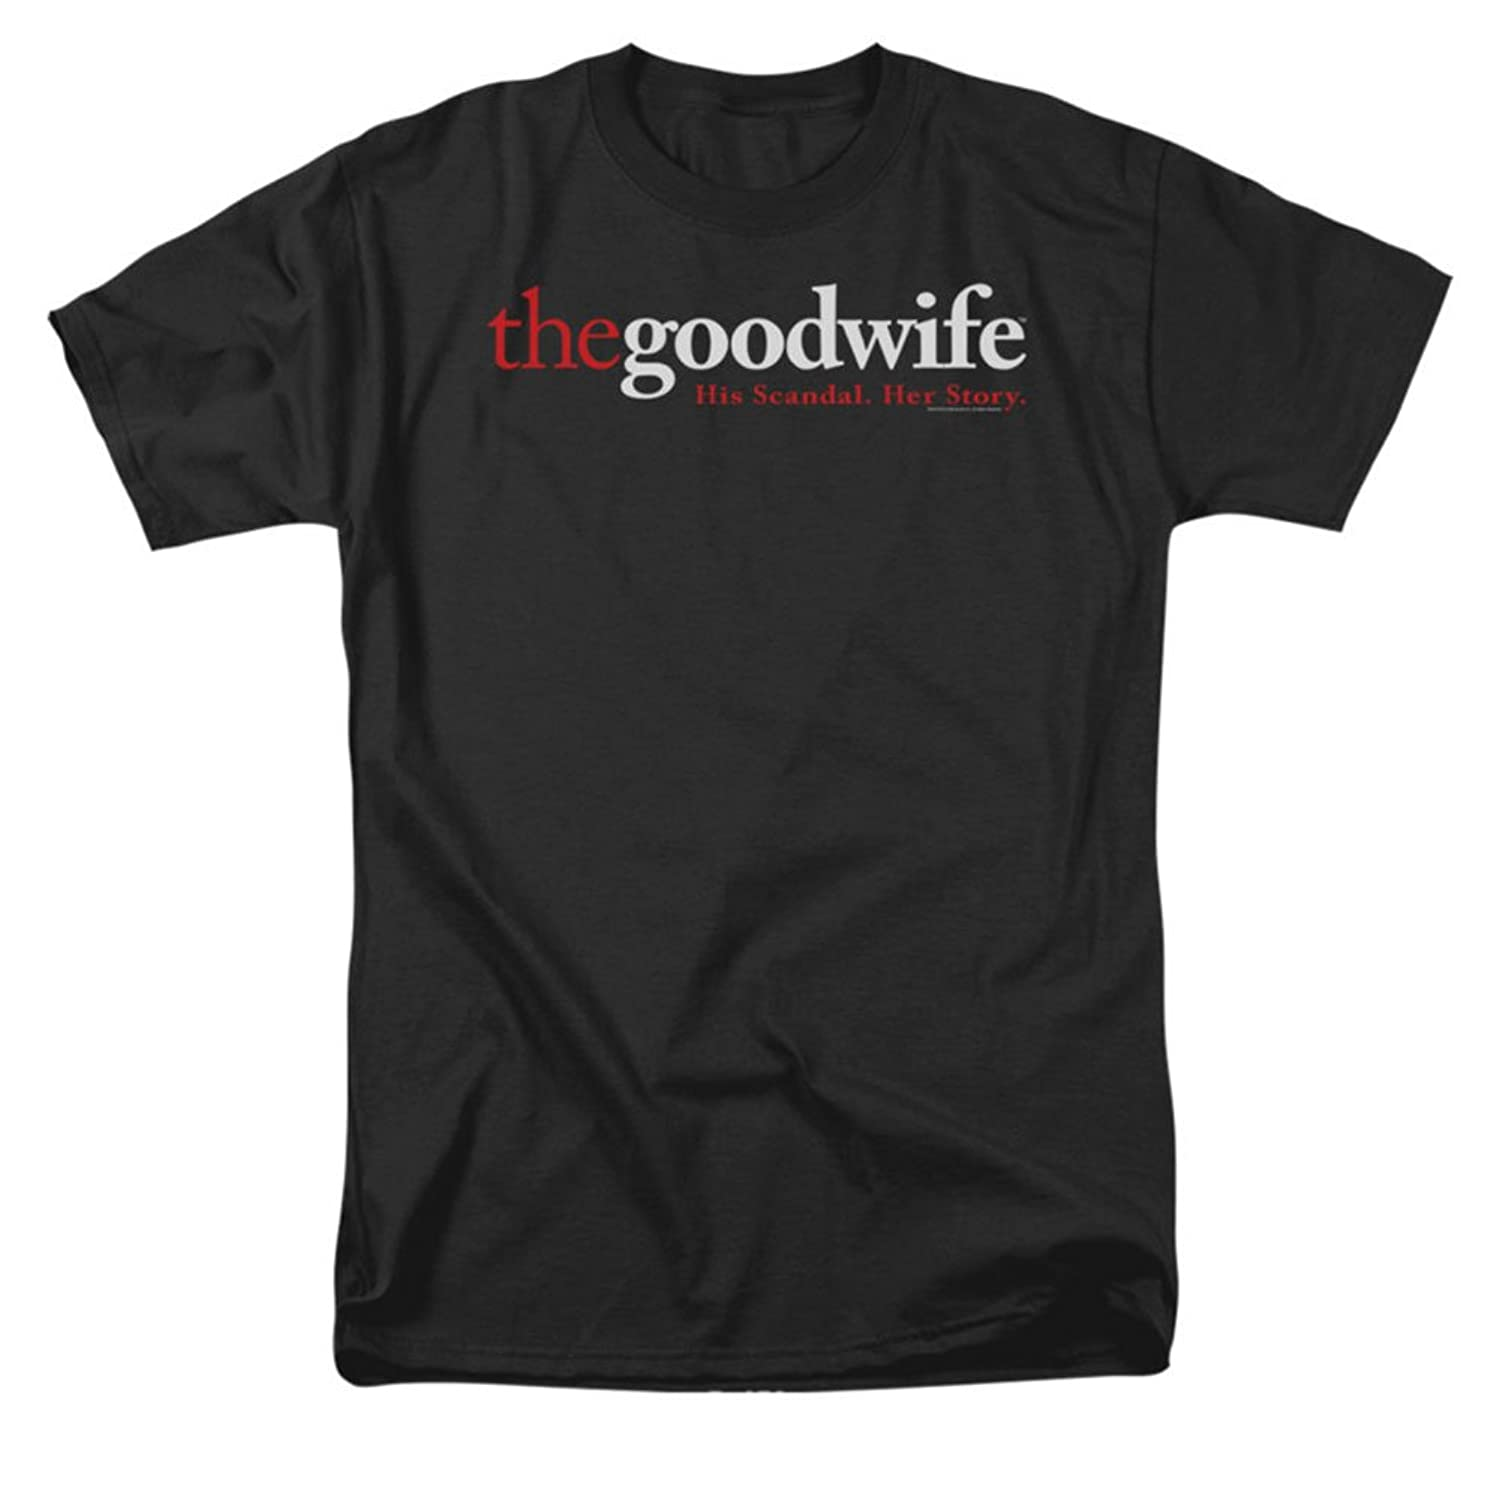 The Good Wife CBS TV Series Logo Adult T-Shirt Tee